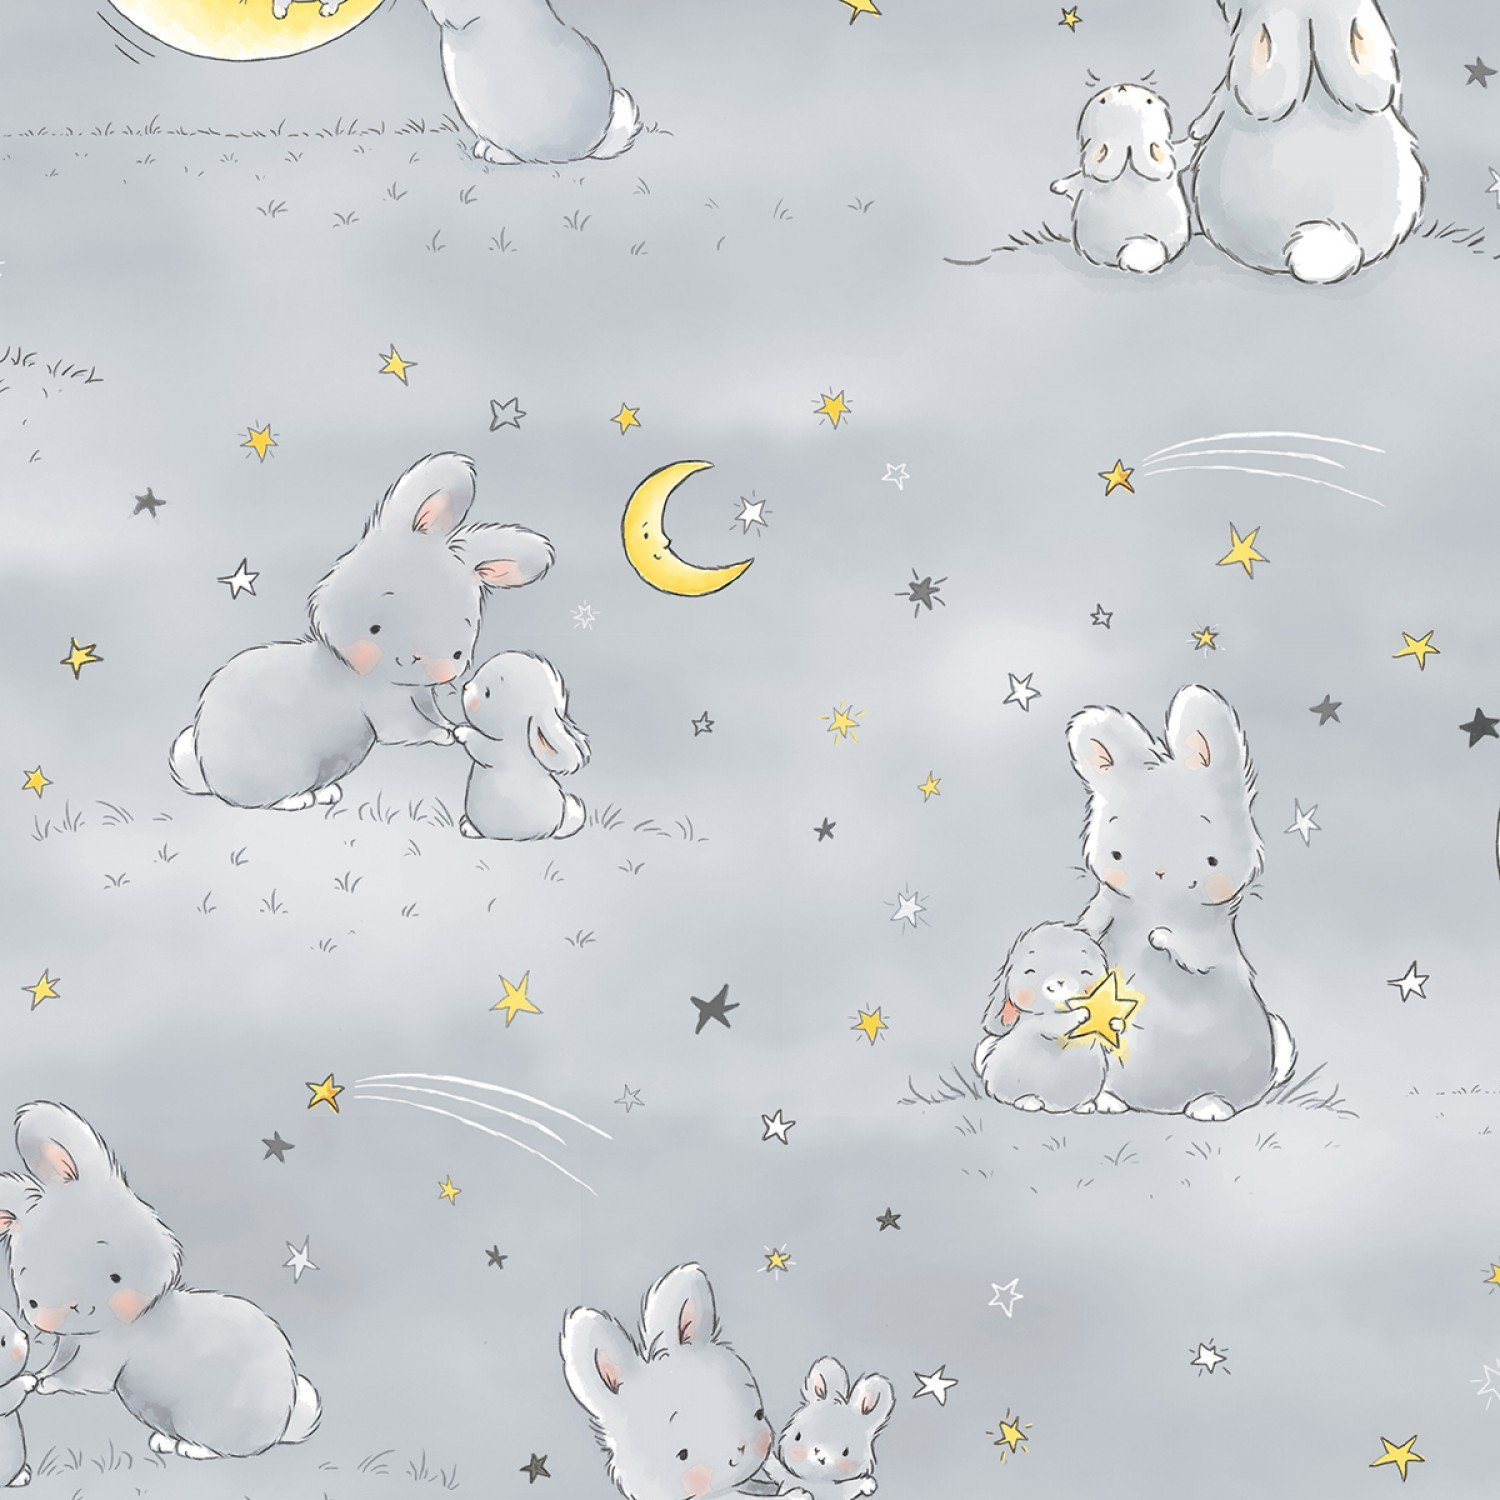 Bunnies and Little Ones with Moons